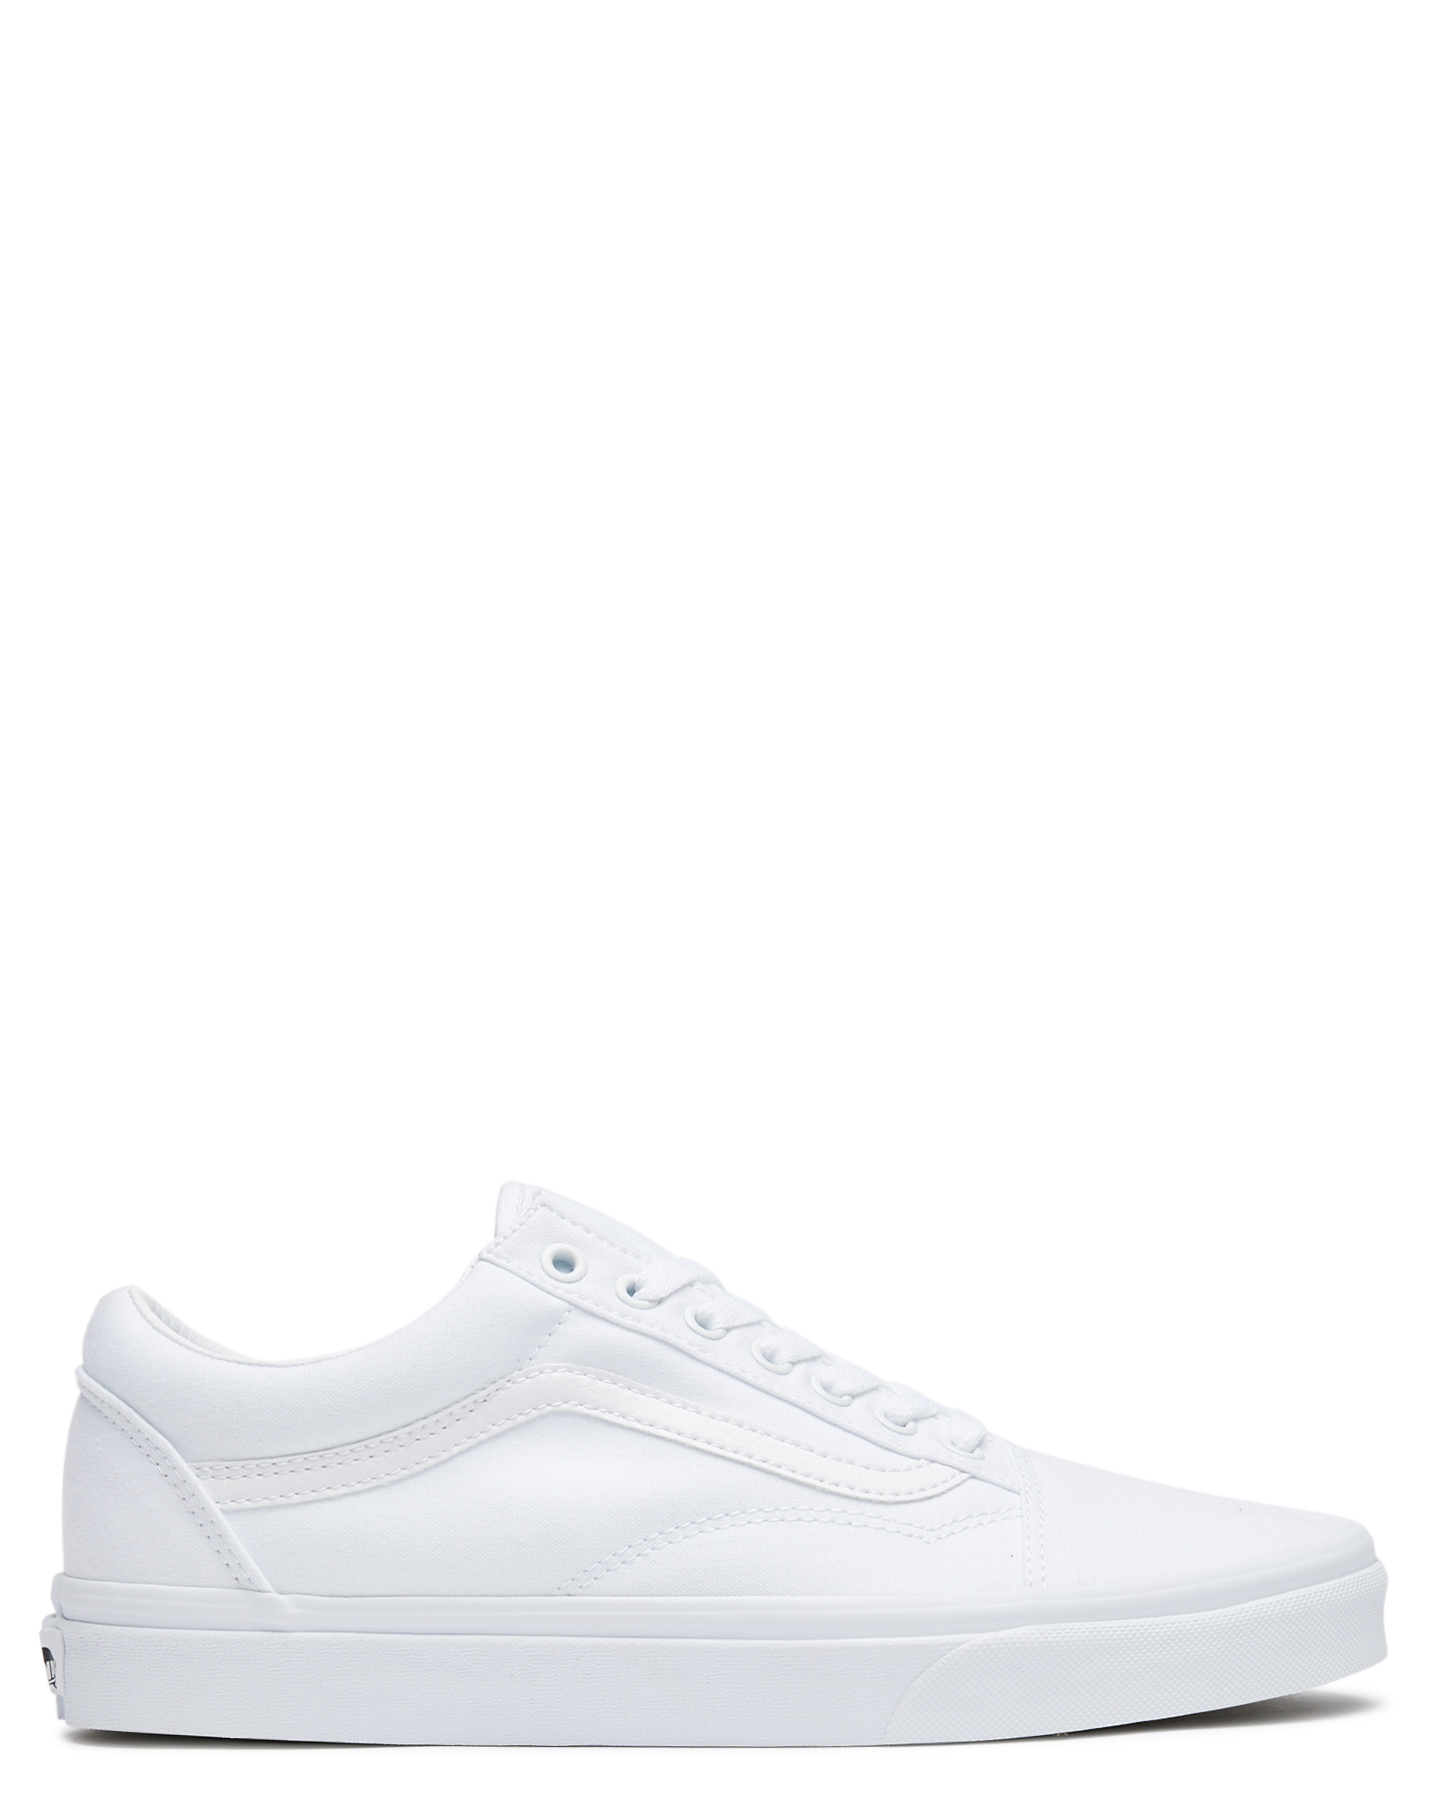 180e5dab125 Vans Skate Men s Mens Old Skool Shoe Lace Soft White